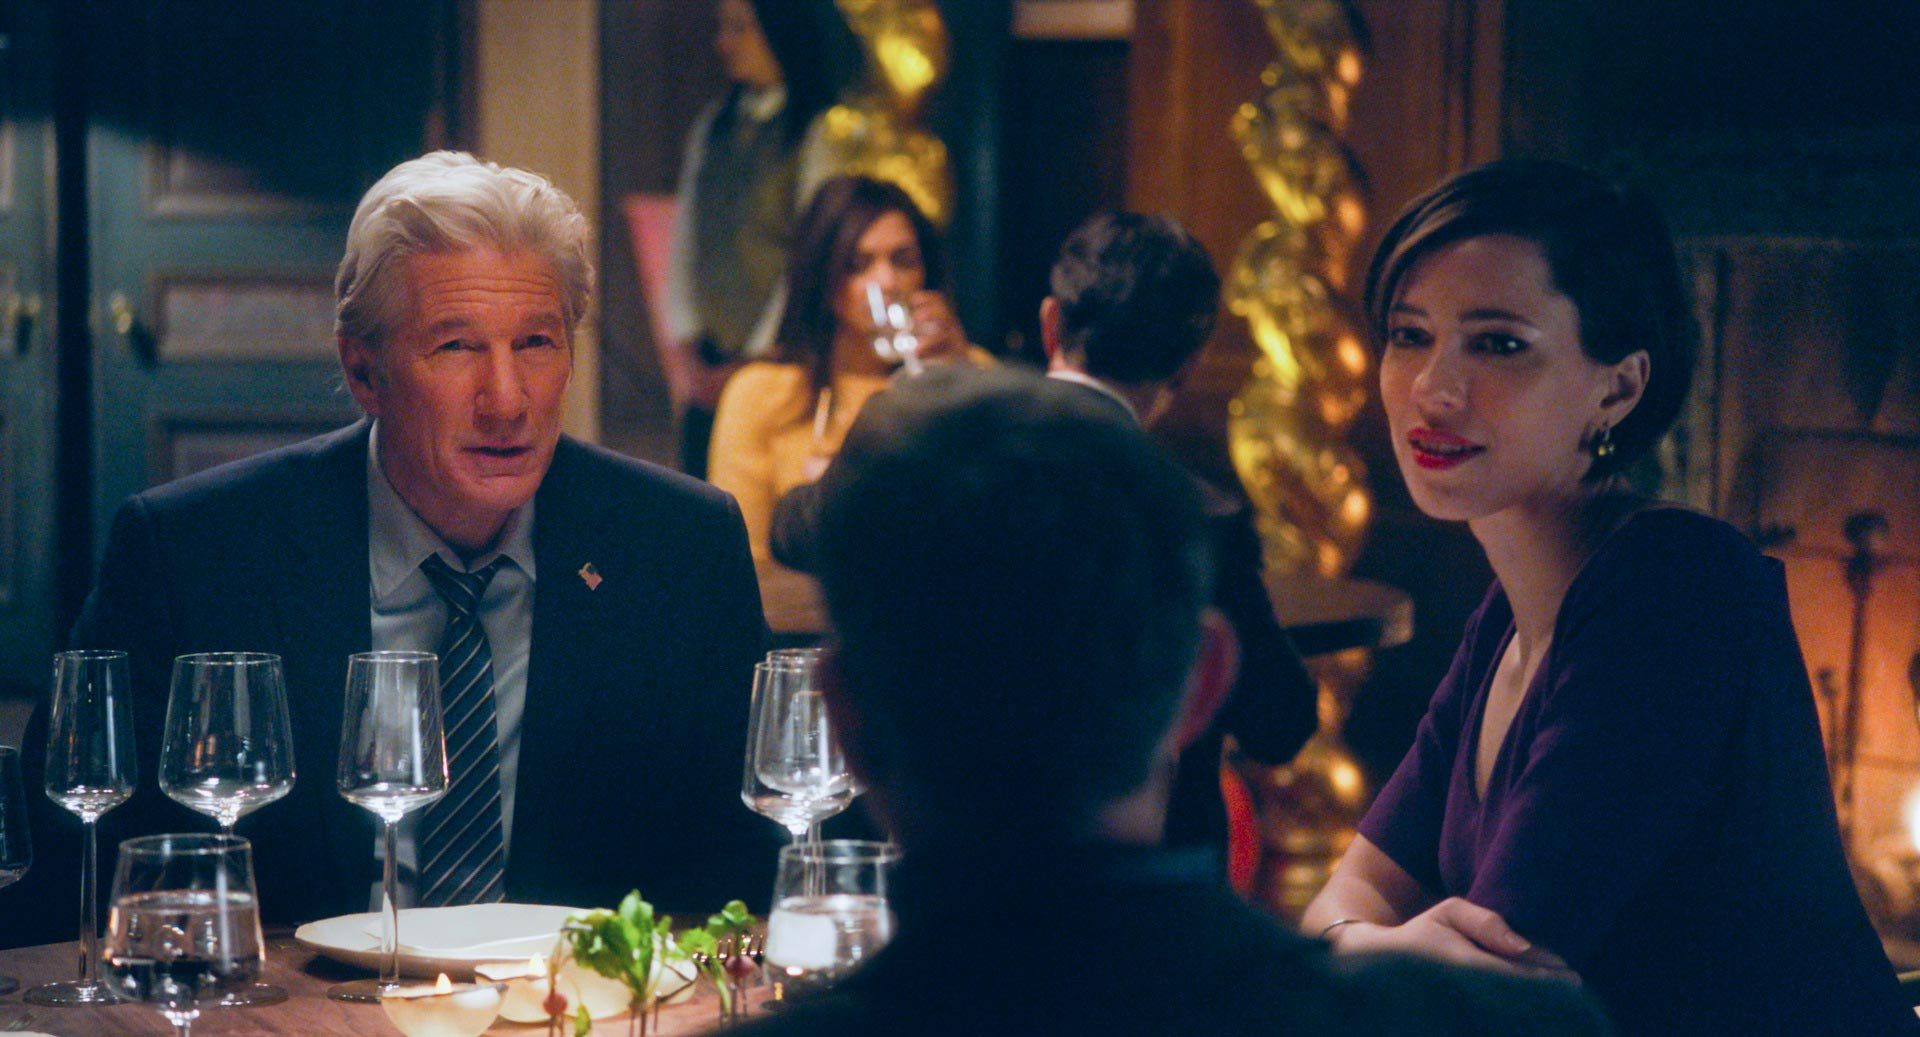 The Dinner Cast  The Dinner Recensione film con Richard Gere